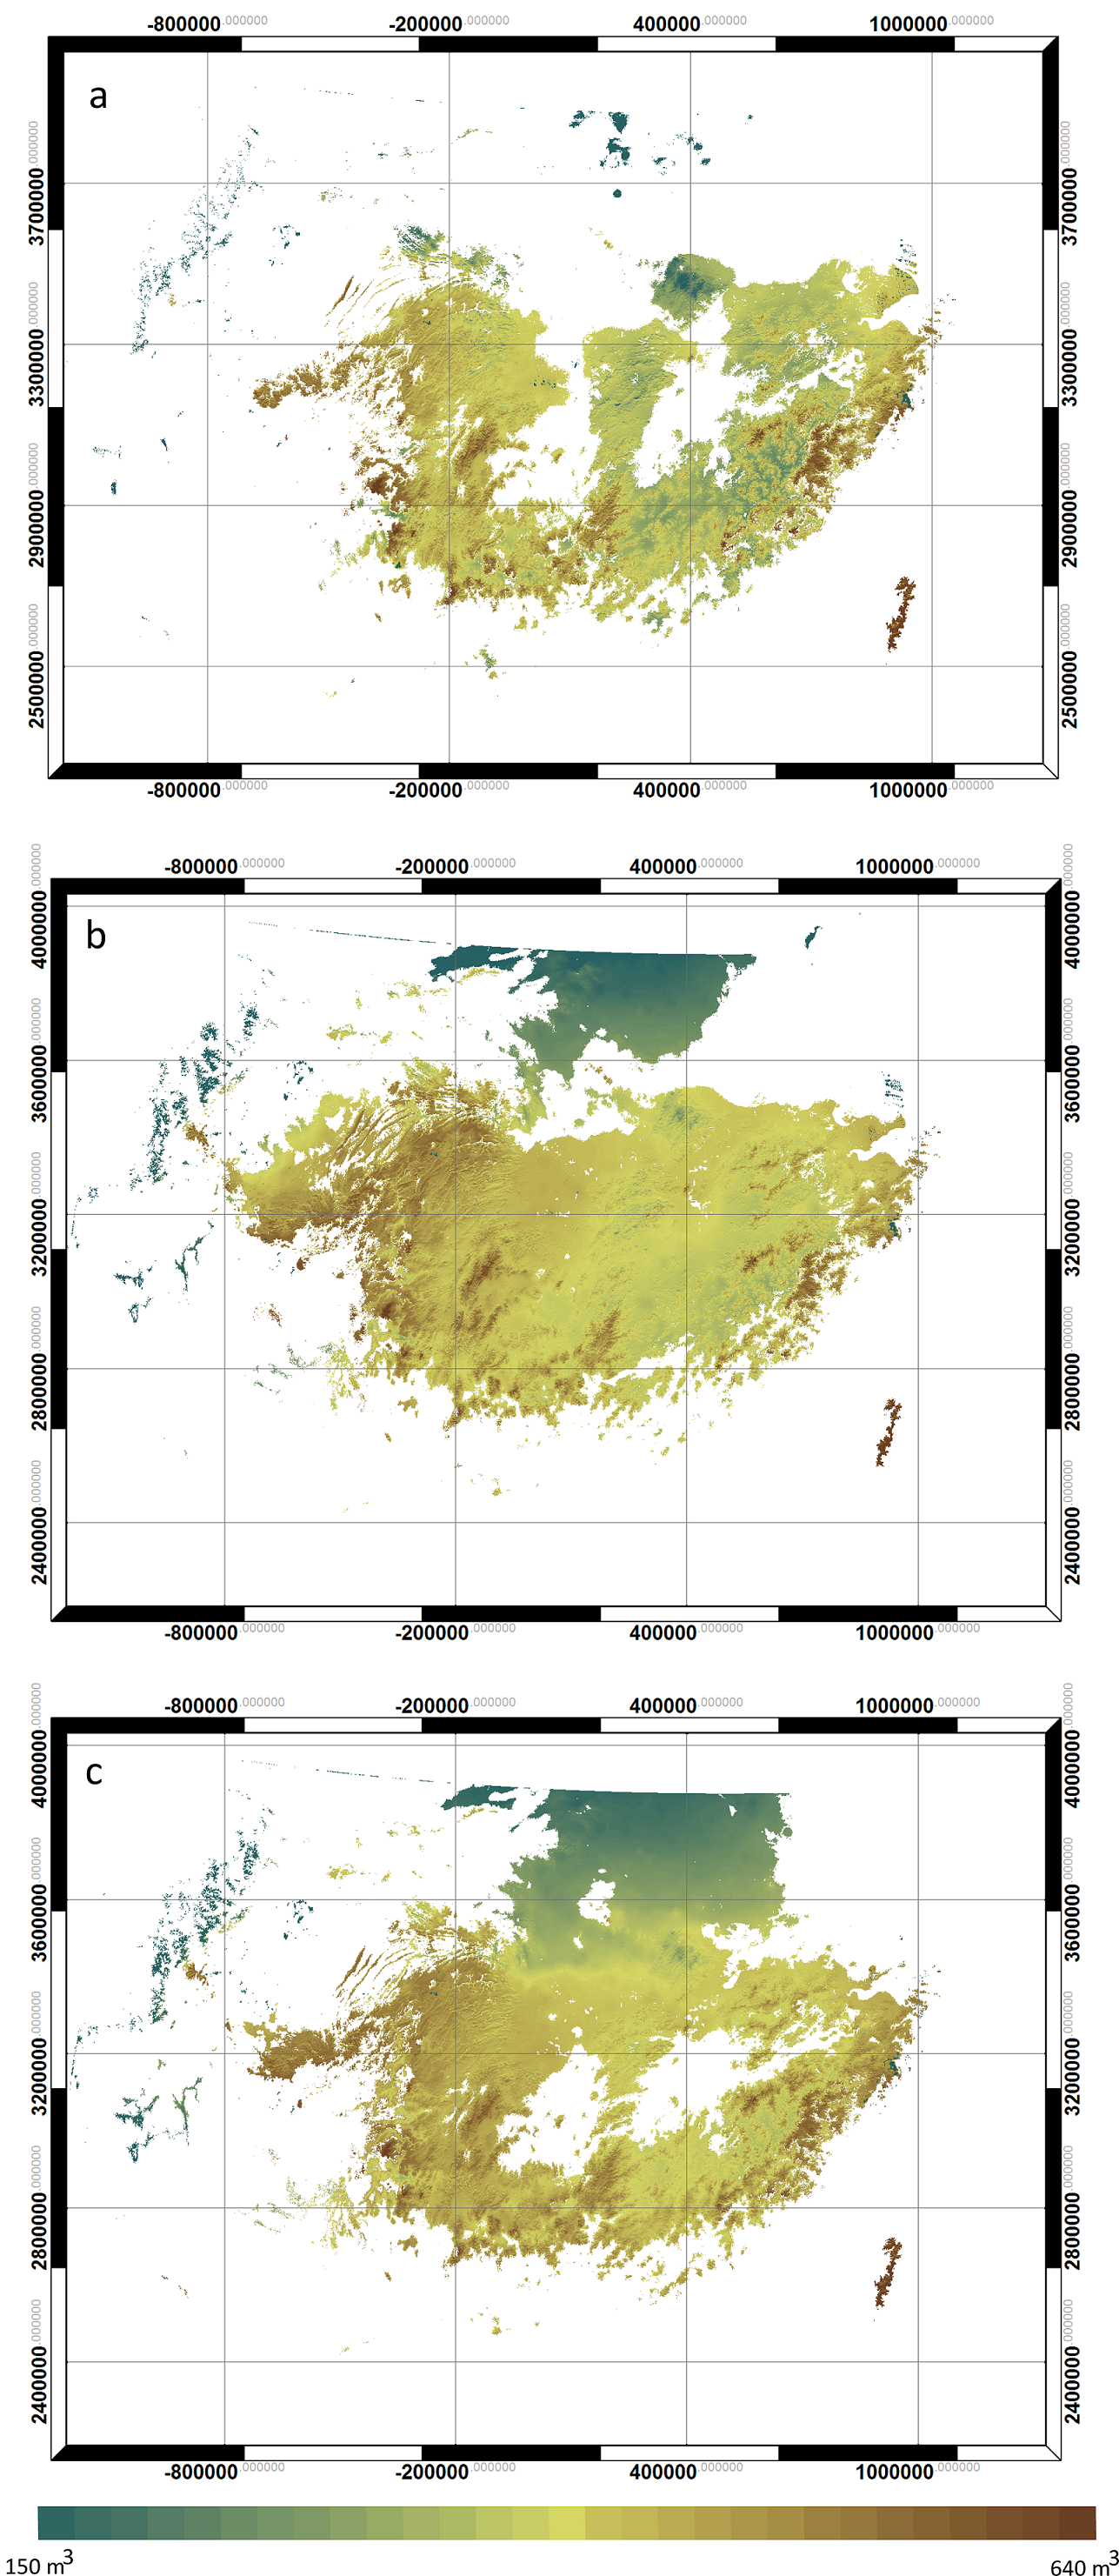 Figure 3.  Stand volume (m3/ha) at age of 20 years, predicted by 3-PG; ( a ) current climate; ( b ) A1B projection; ( c ) A2 projection.